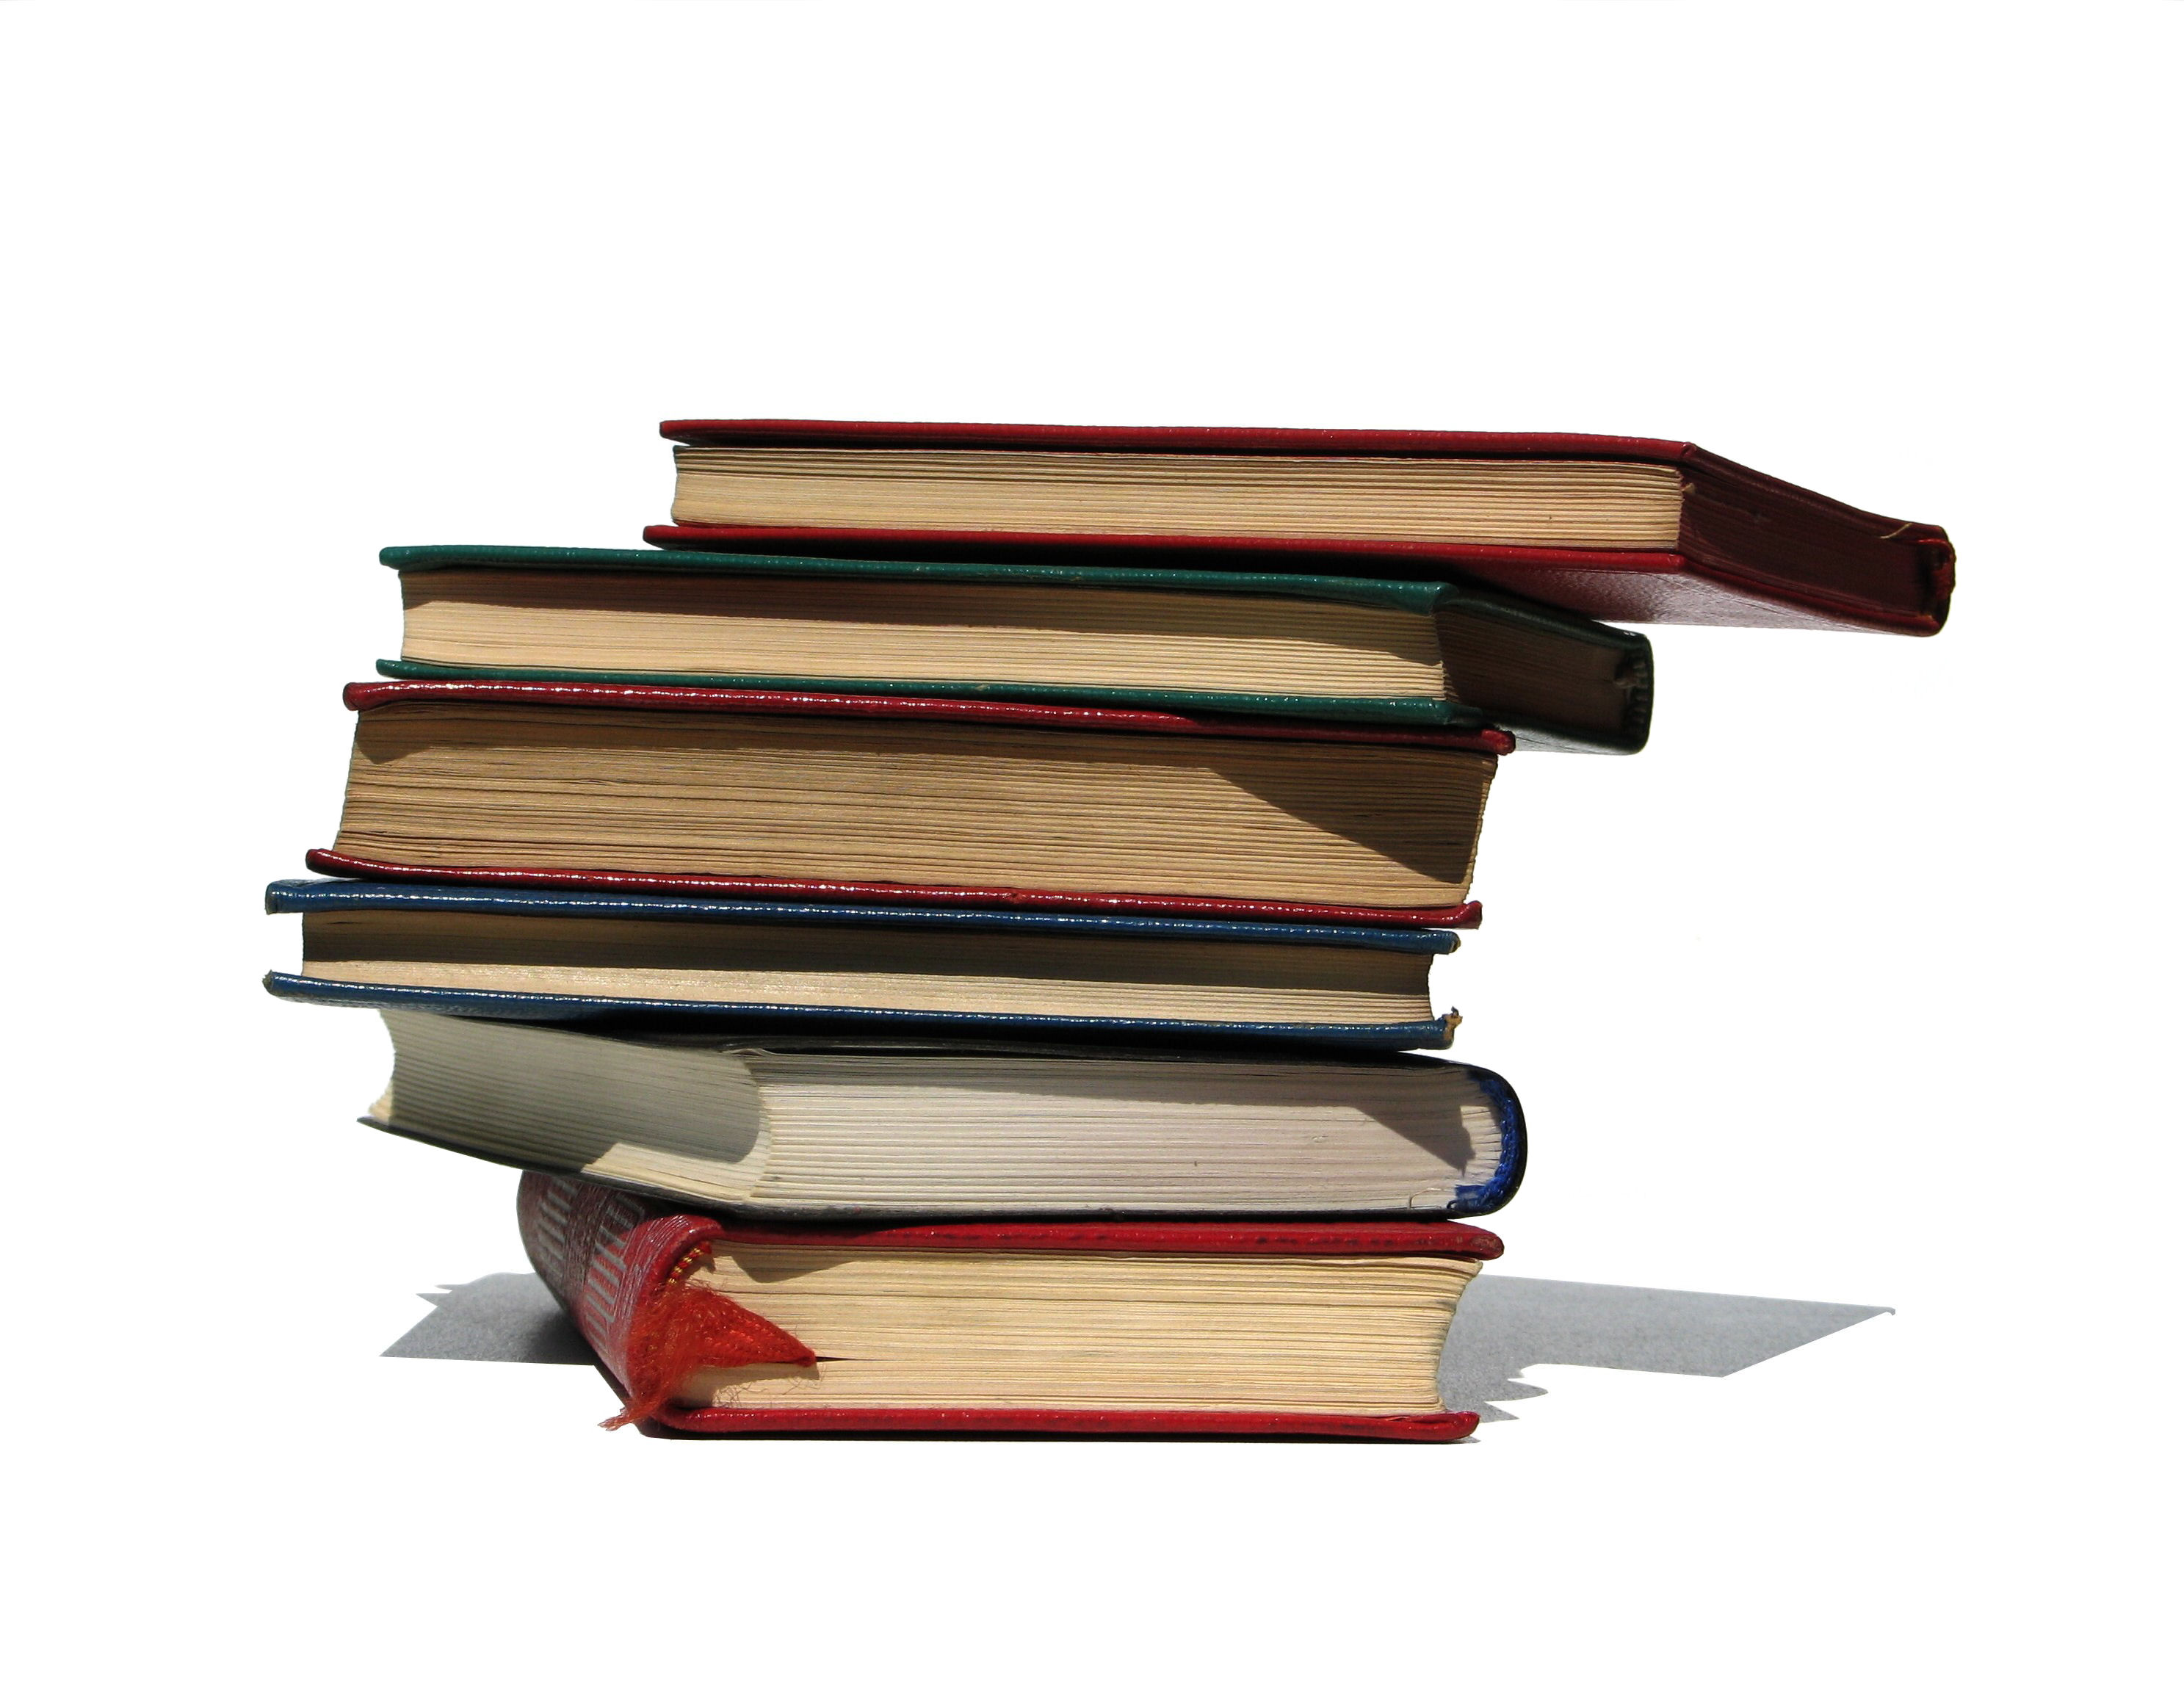 Choosing Where To Publish Academic Books